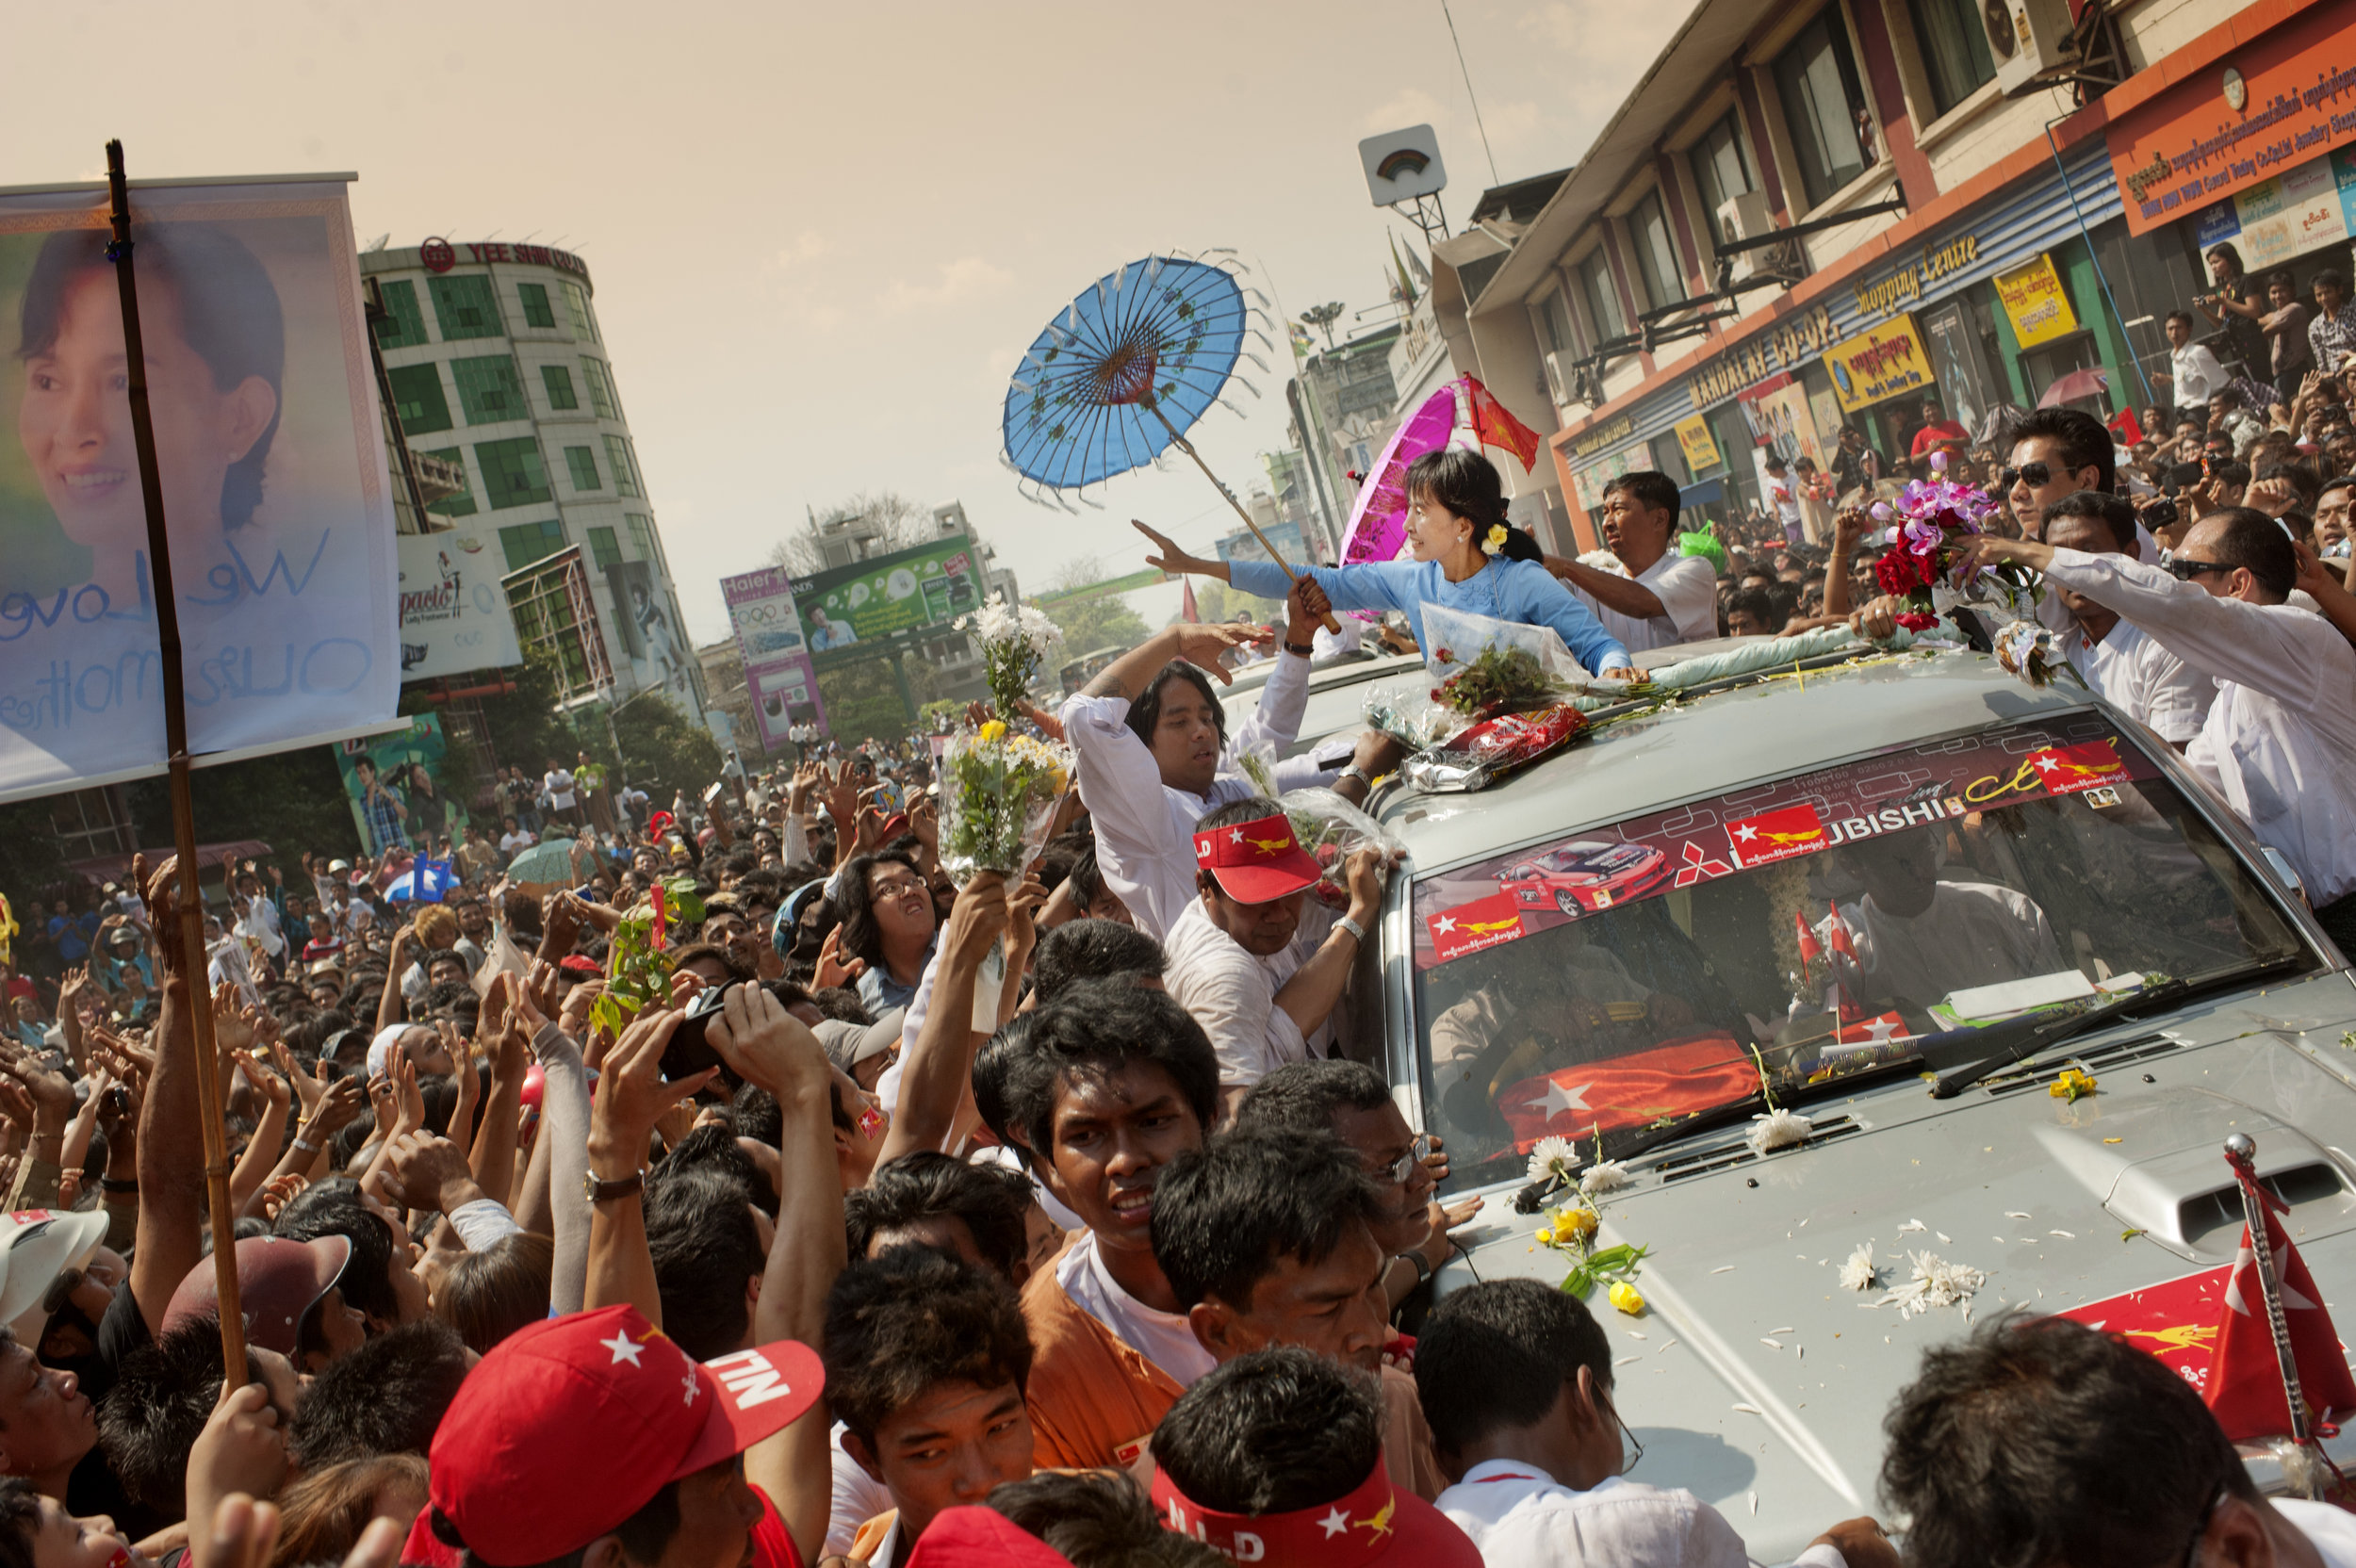 Aung San Suu Kyi, is greeted on the streets of Mandalay for the upcoming parliamentary seats election / Burma - 2012